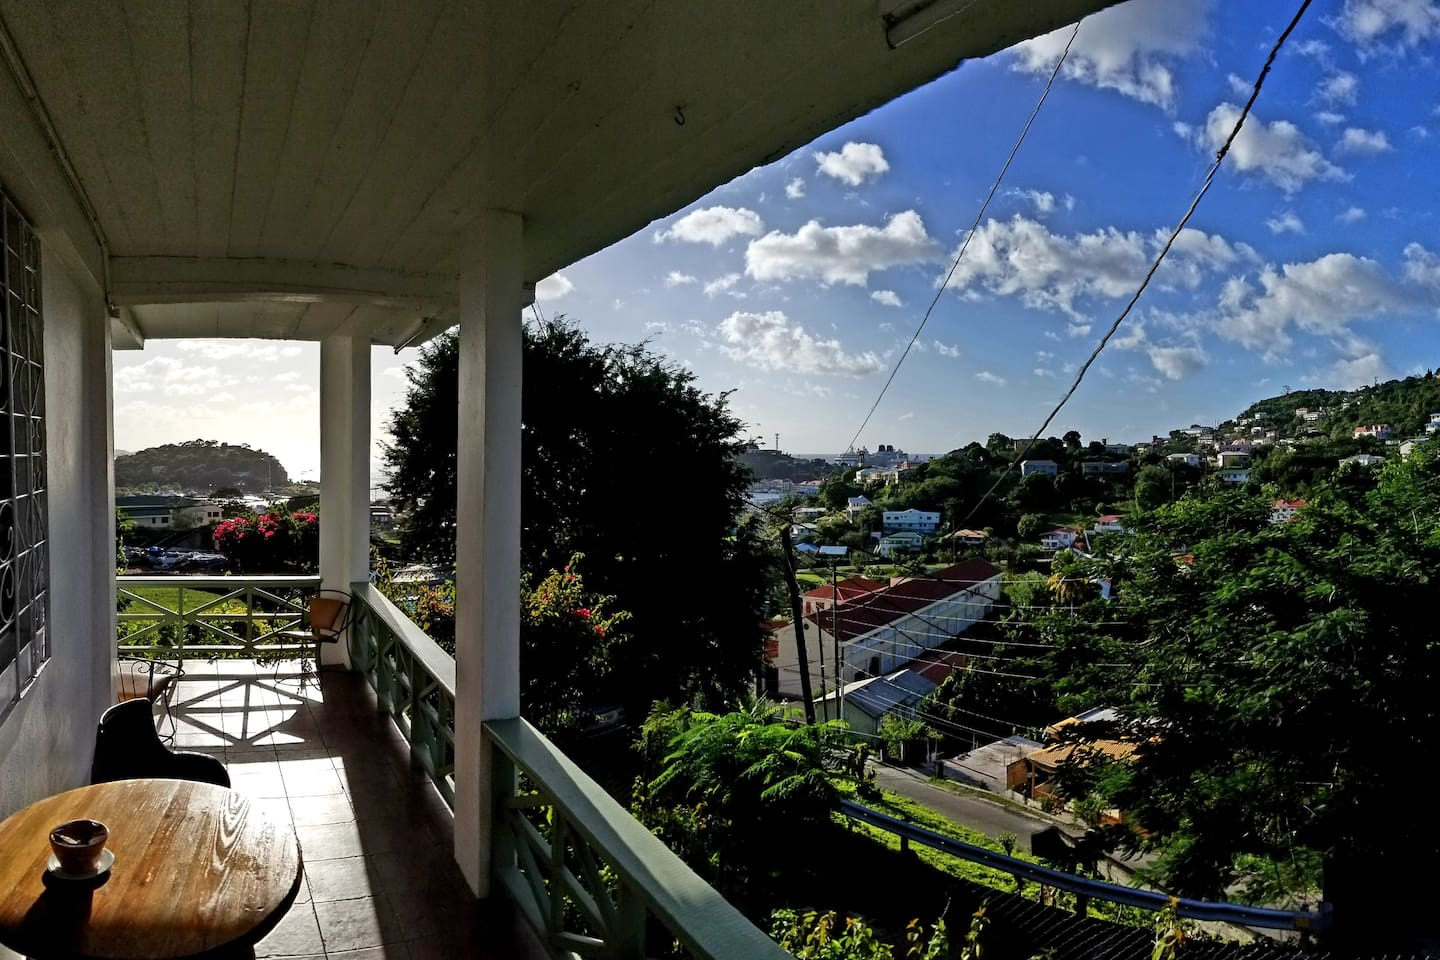 Veranda and view looking out from apt door.